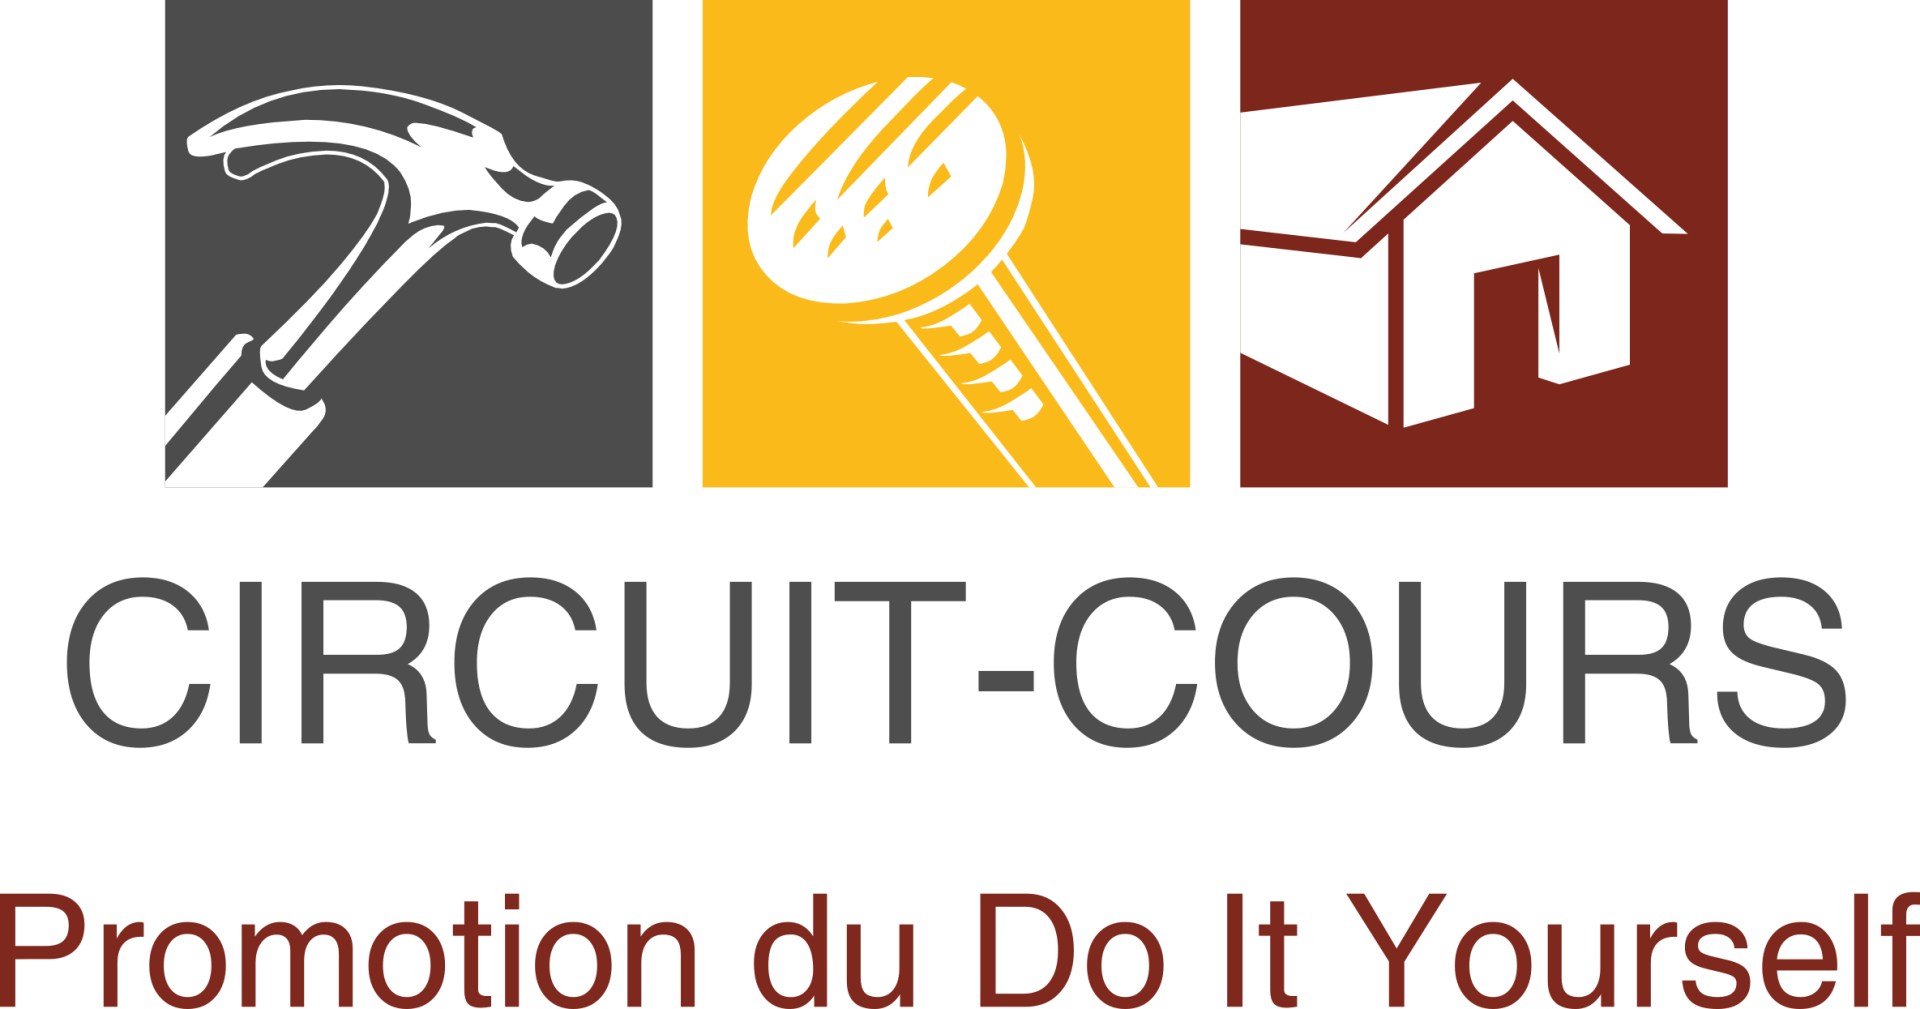 Association - CIRCUIT-COURS